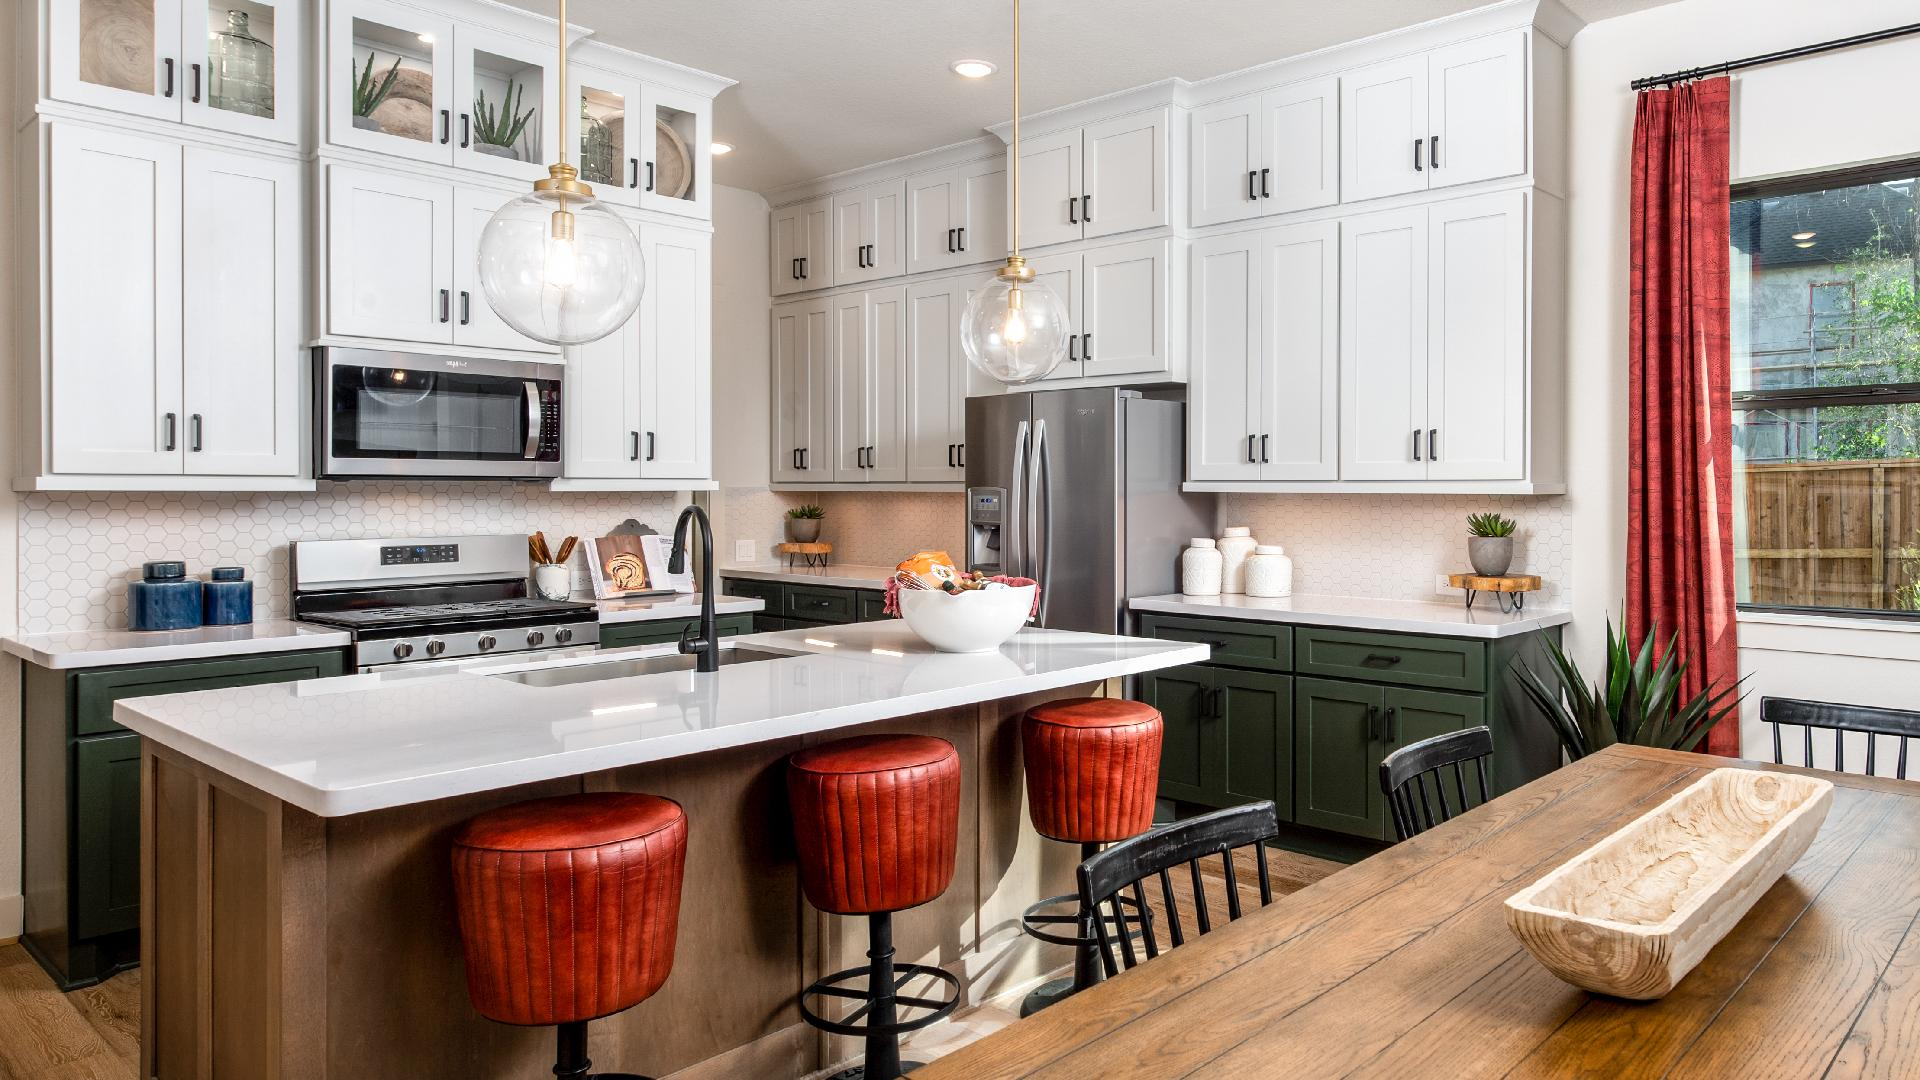 Leighton's well-designed kitchen overlooks a spacious casual dining area